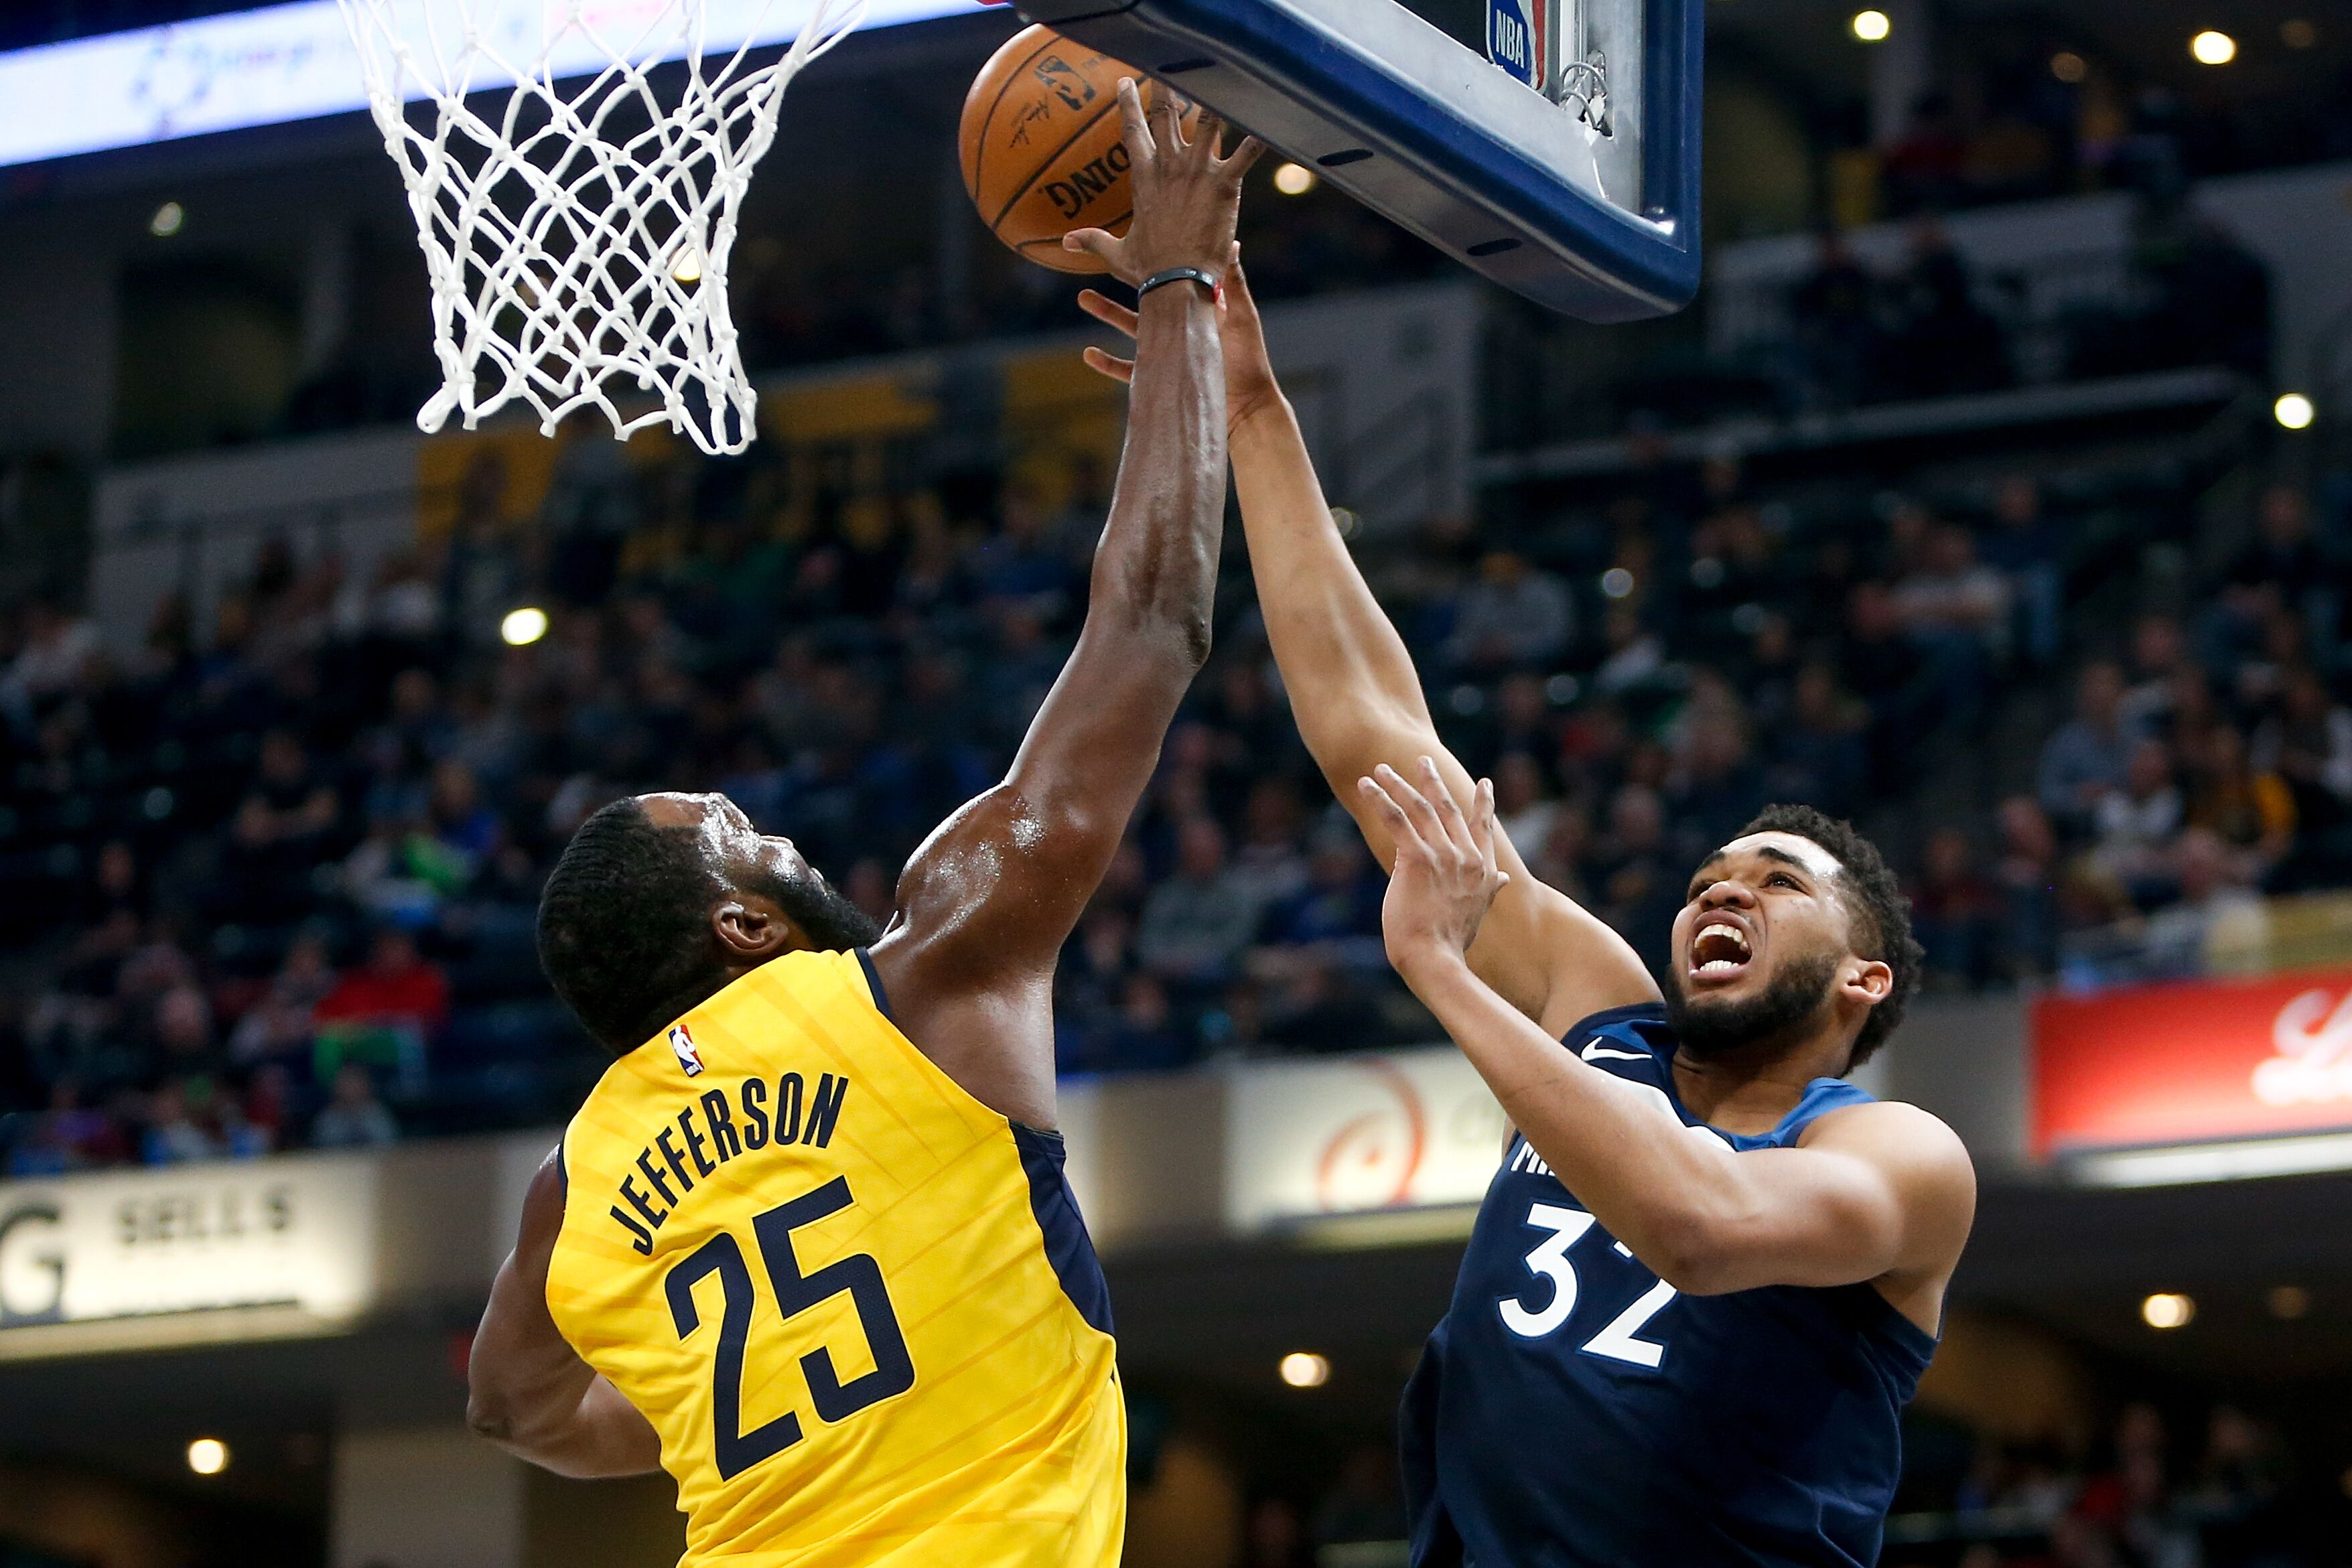 900125228-minnesota-timberwolves-v-indiana-pacers.jpg